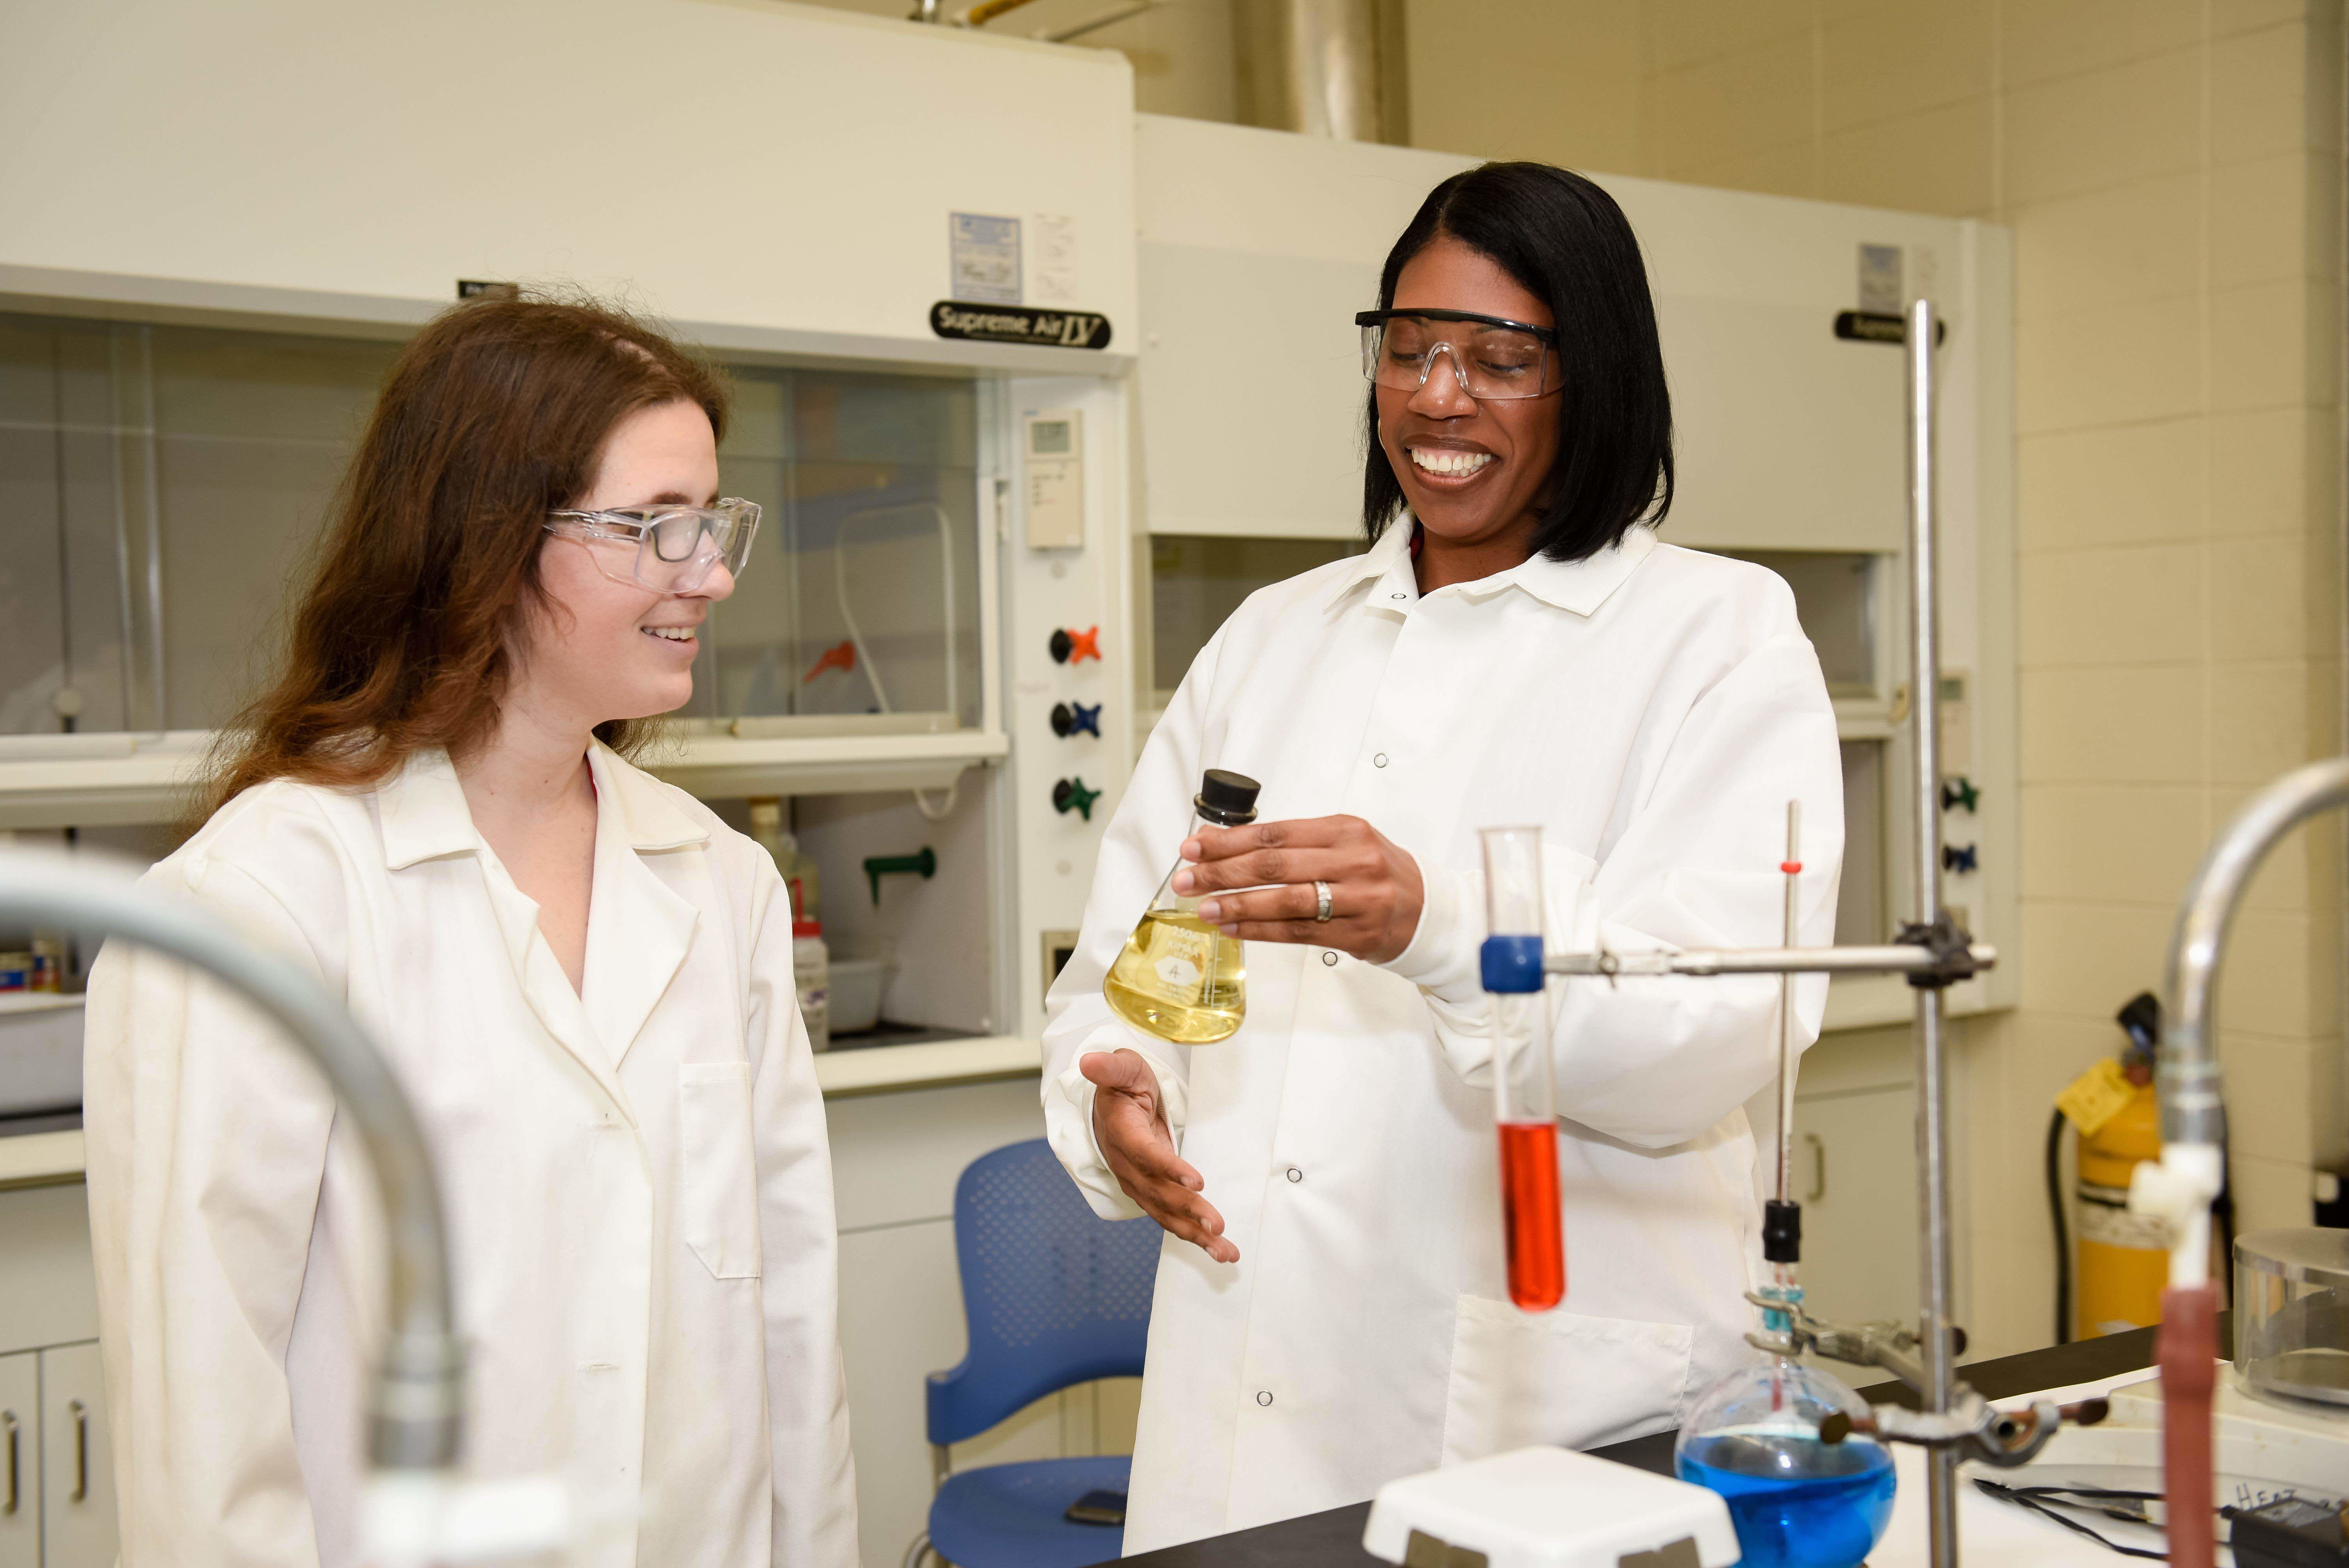 Dr. Mills, right, in chemistry lab with a student.